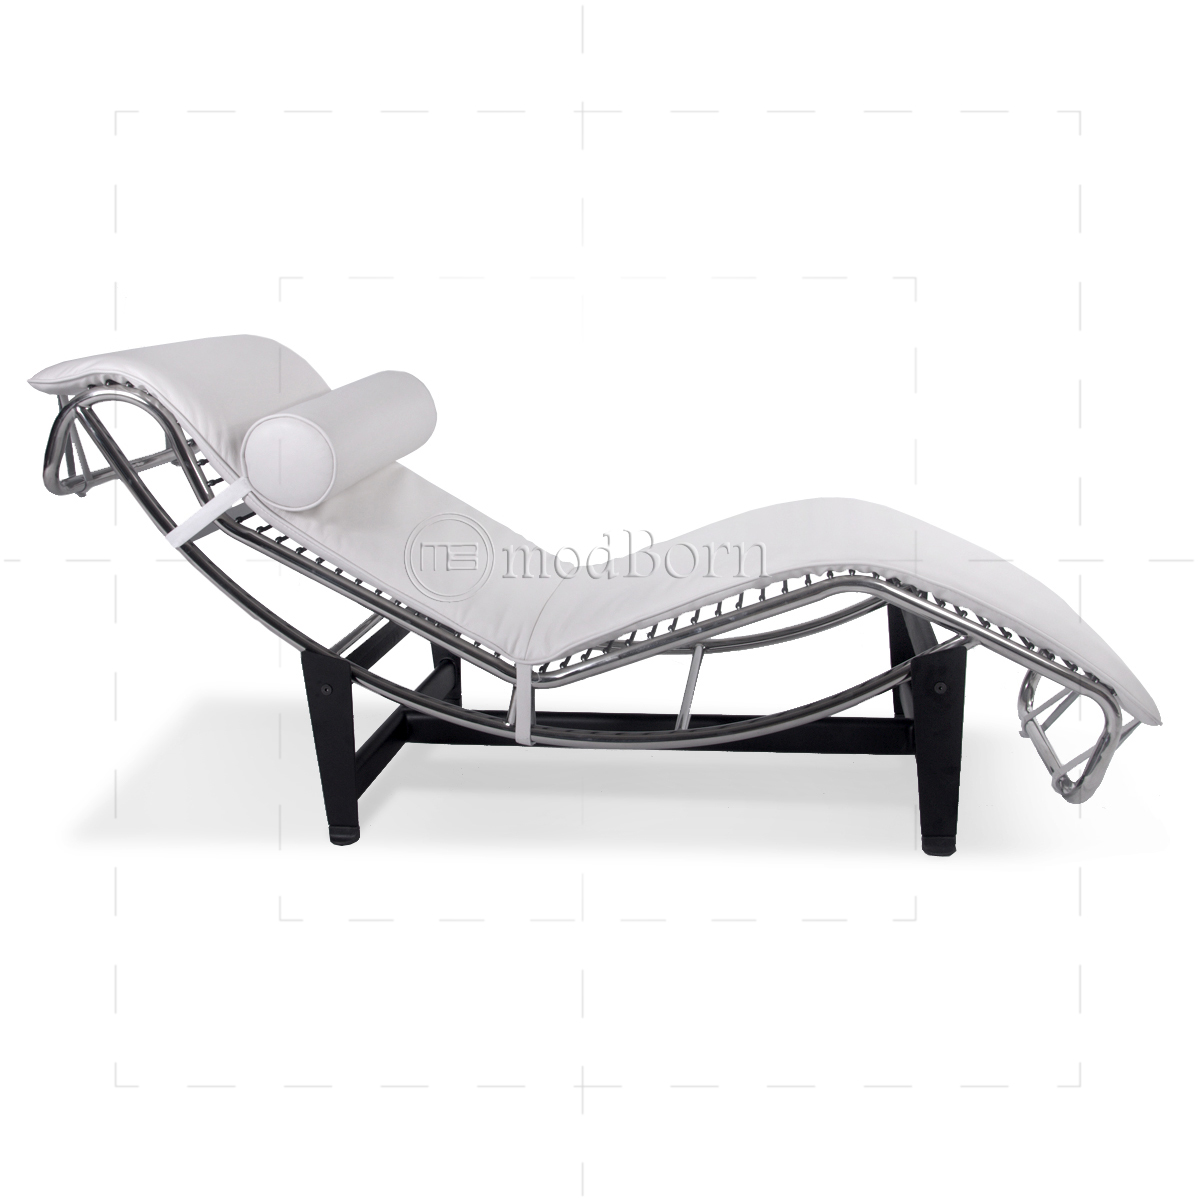 Le corbusier style lc4 chaise longue white leather replica for Chaise longue le corbusier precio